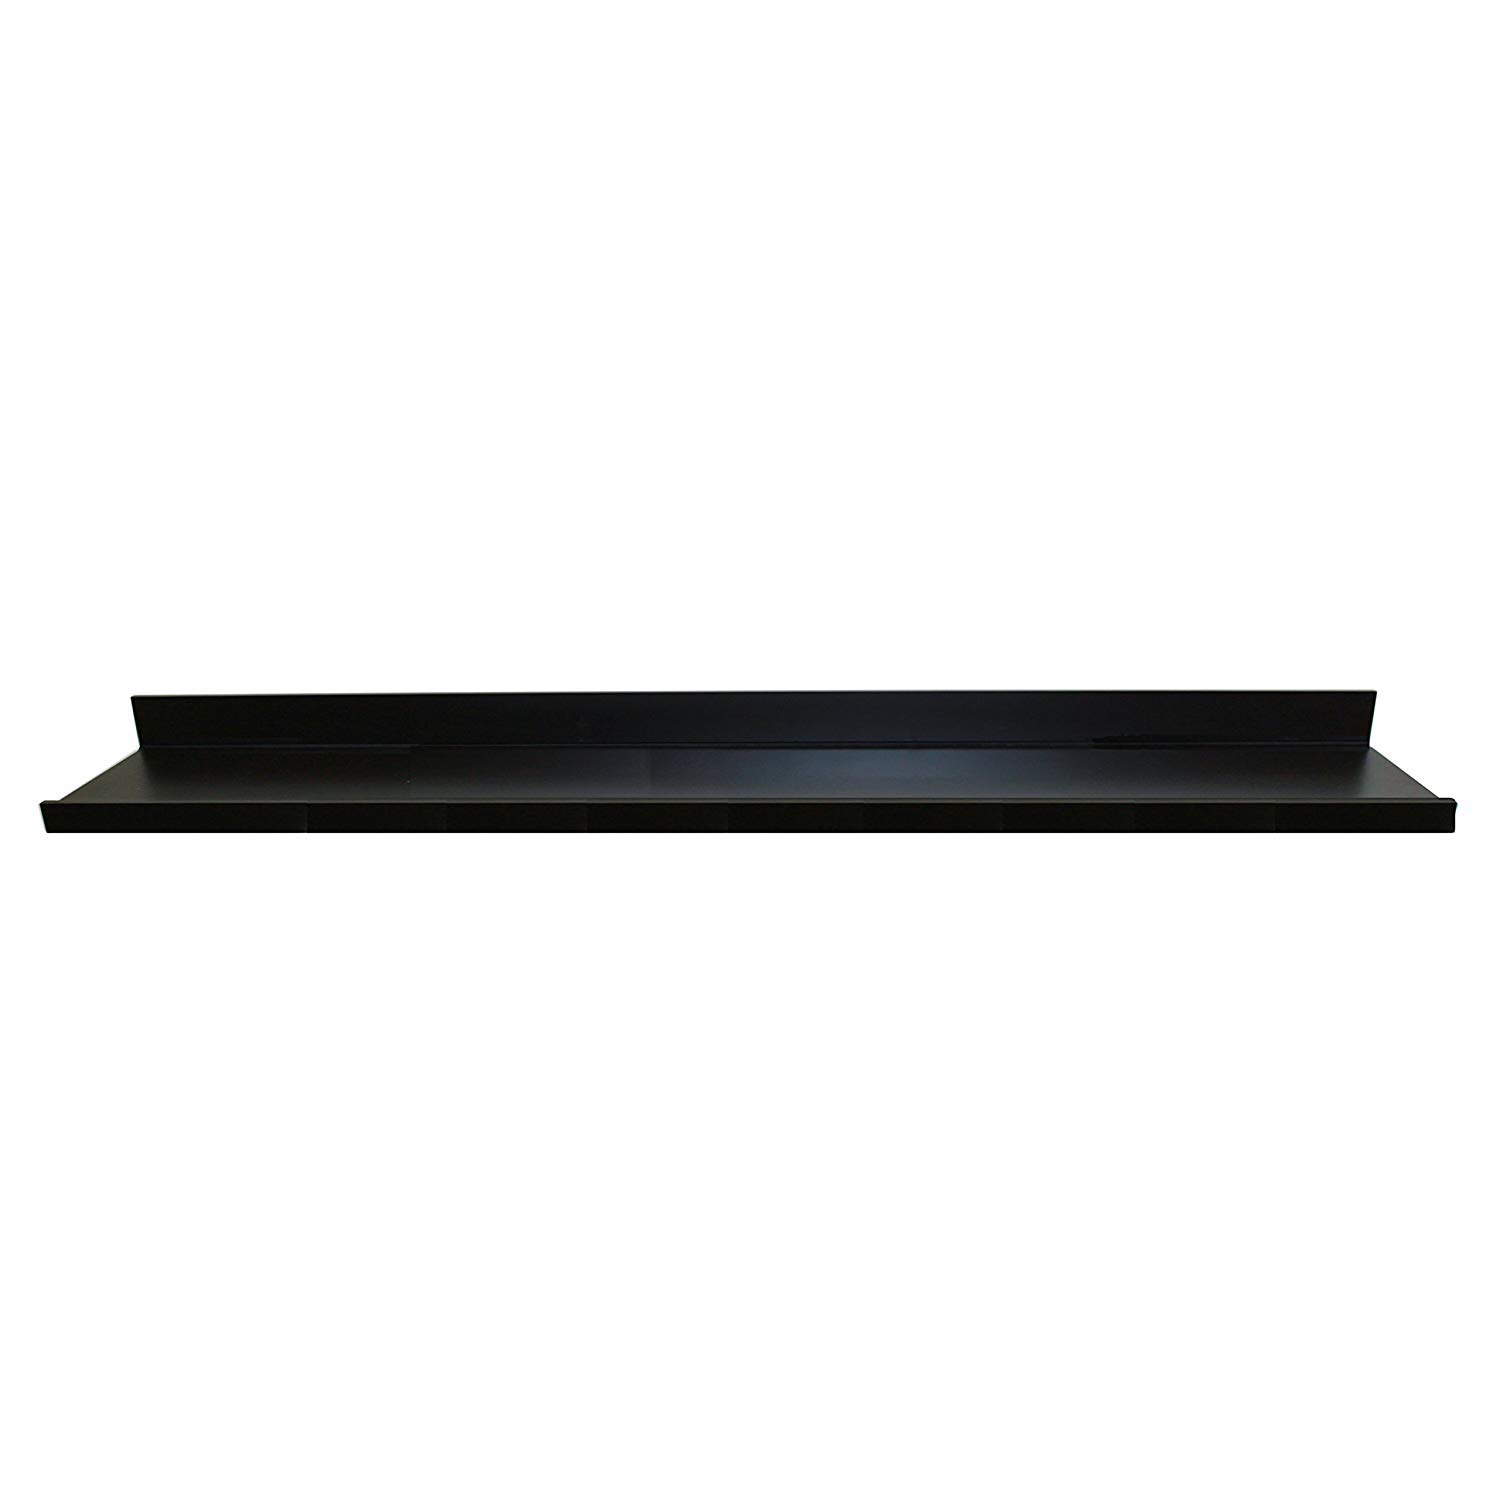 inplace shelving floating shelf with ture black lacquer ledge inch wide deep high home improvement ikea wall rack system mount without drilling corner cabinet shelves coat